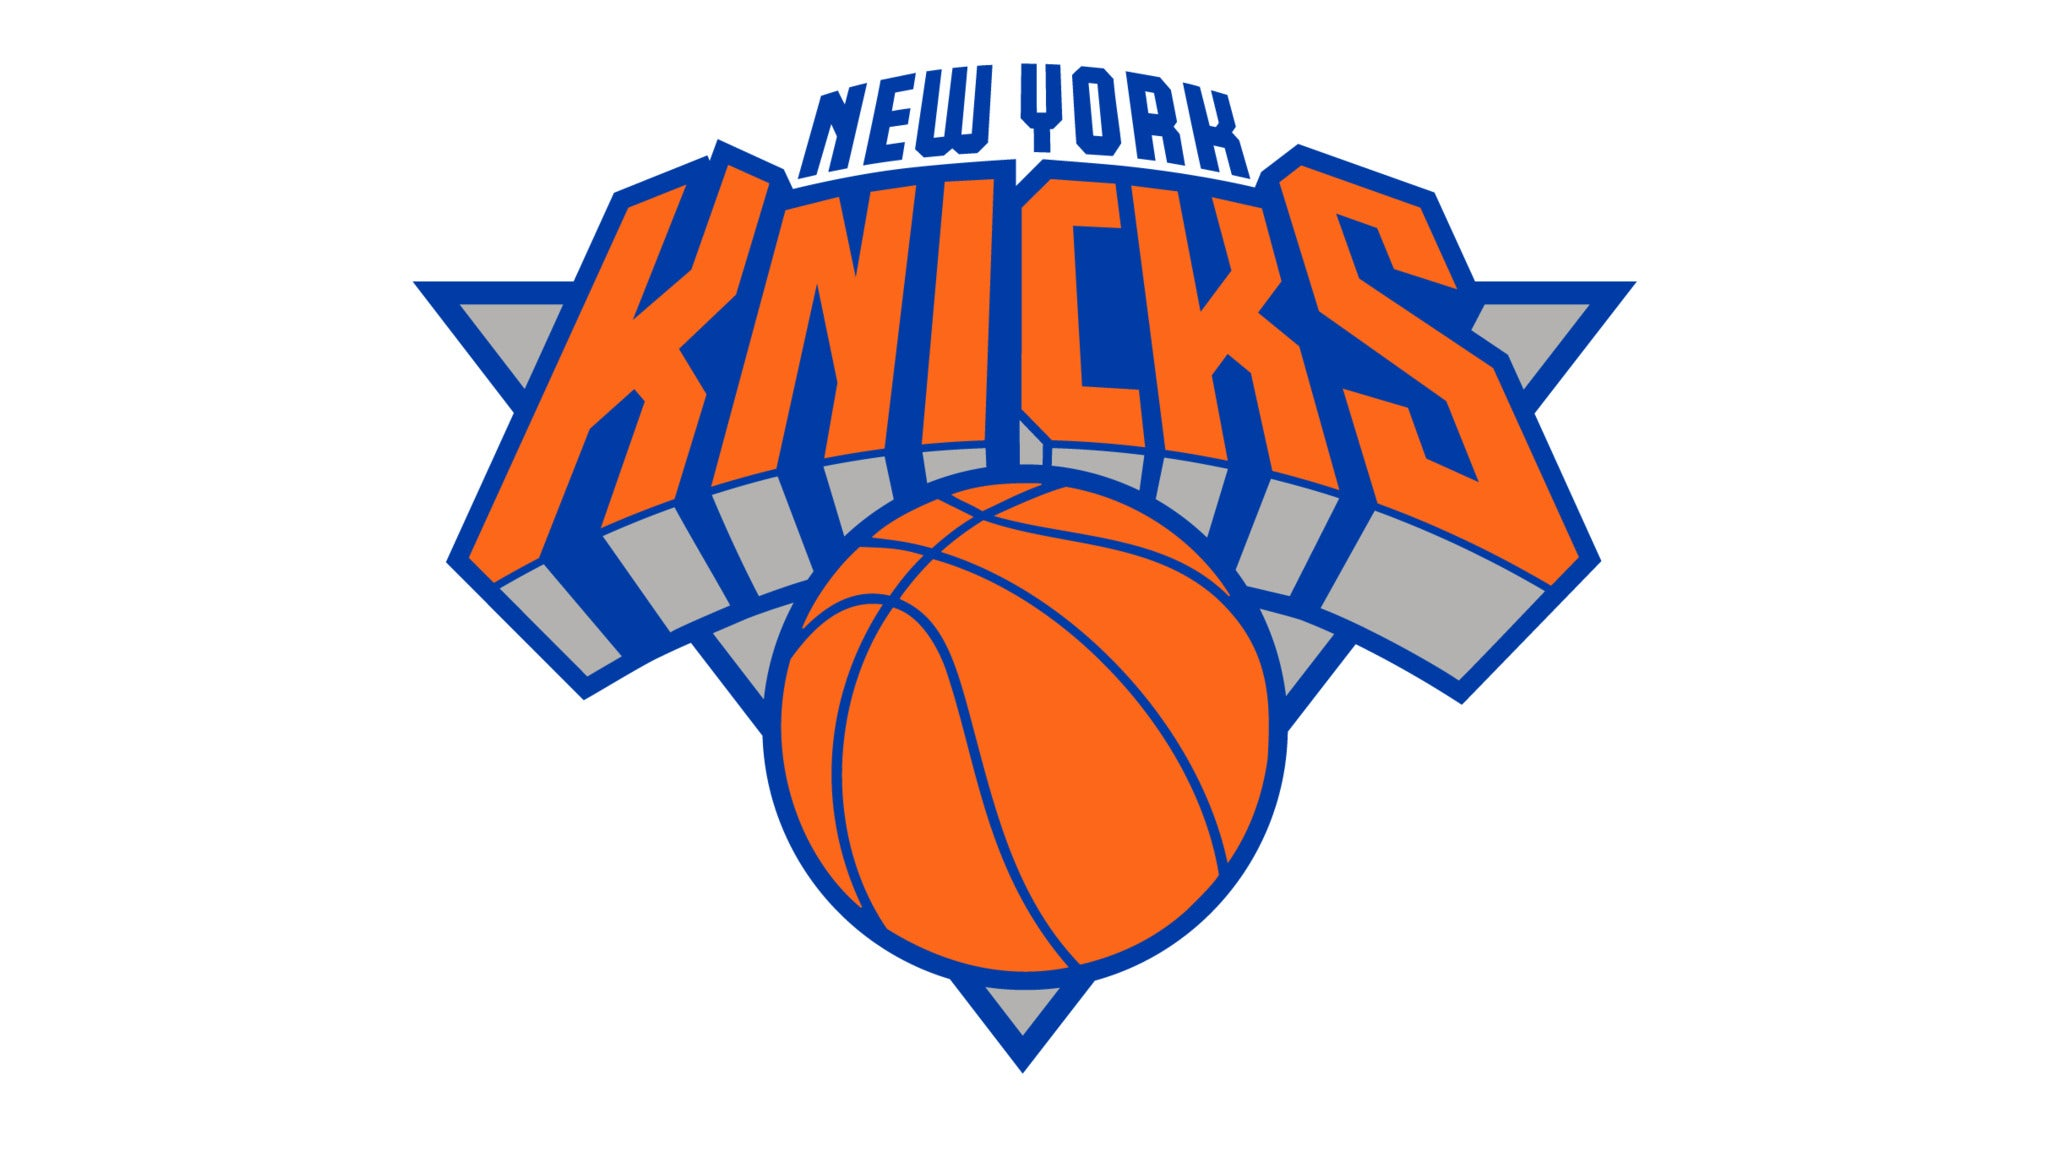 New York Knicks vs. Chicago Bulls